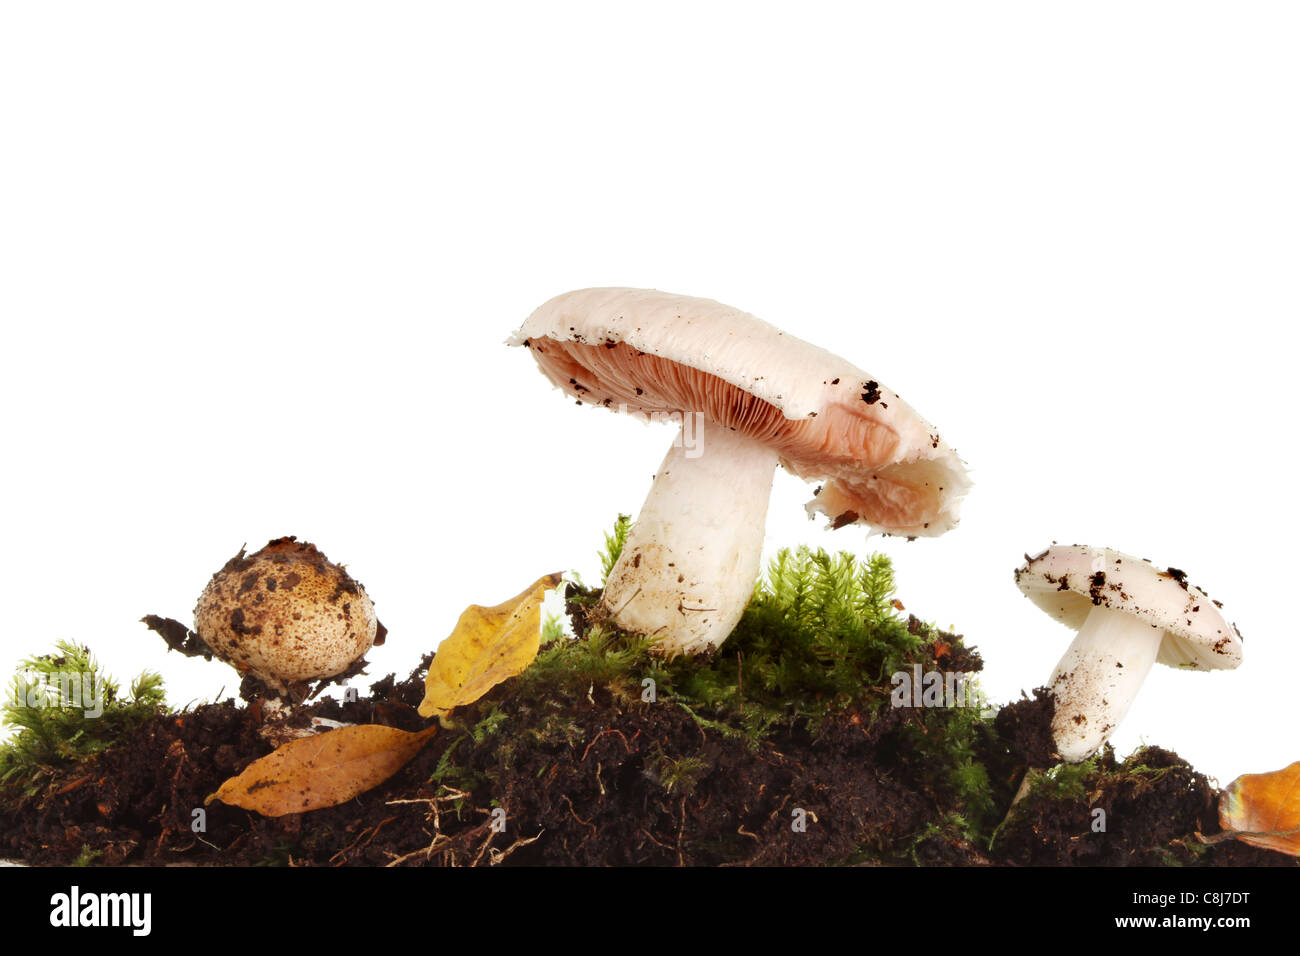 Group of fungi, wild mushroom, toadstool and puff ball among moss and Autumn leaves - Stock Image